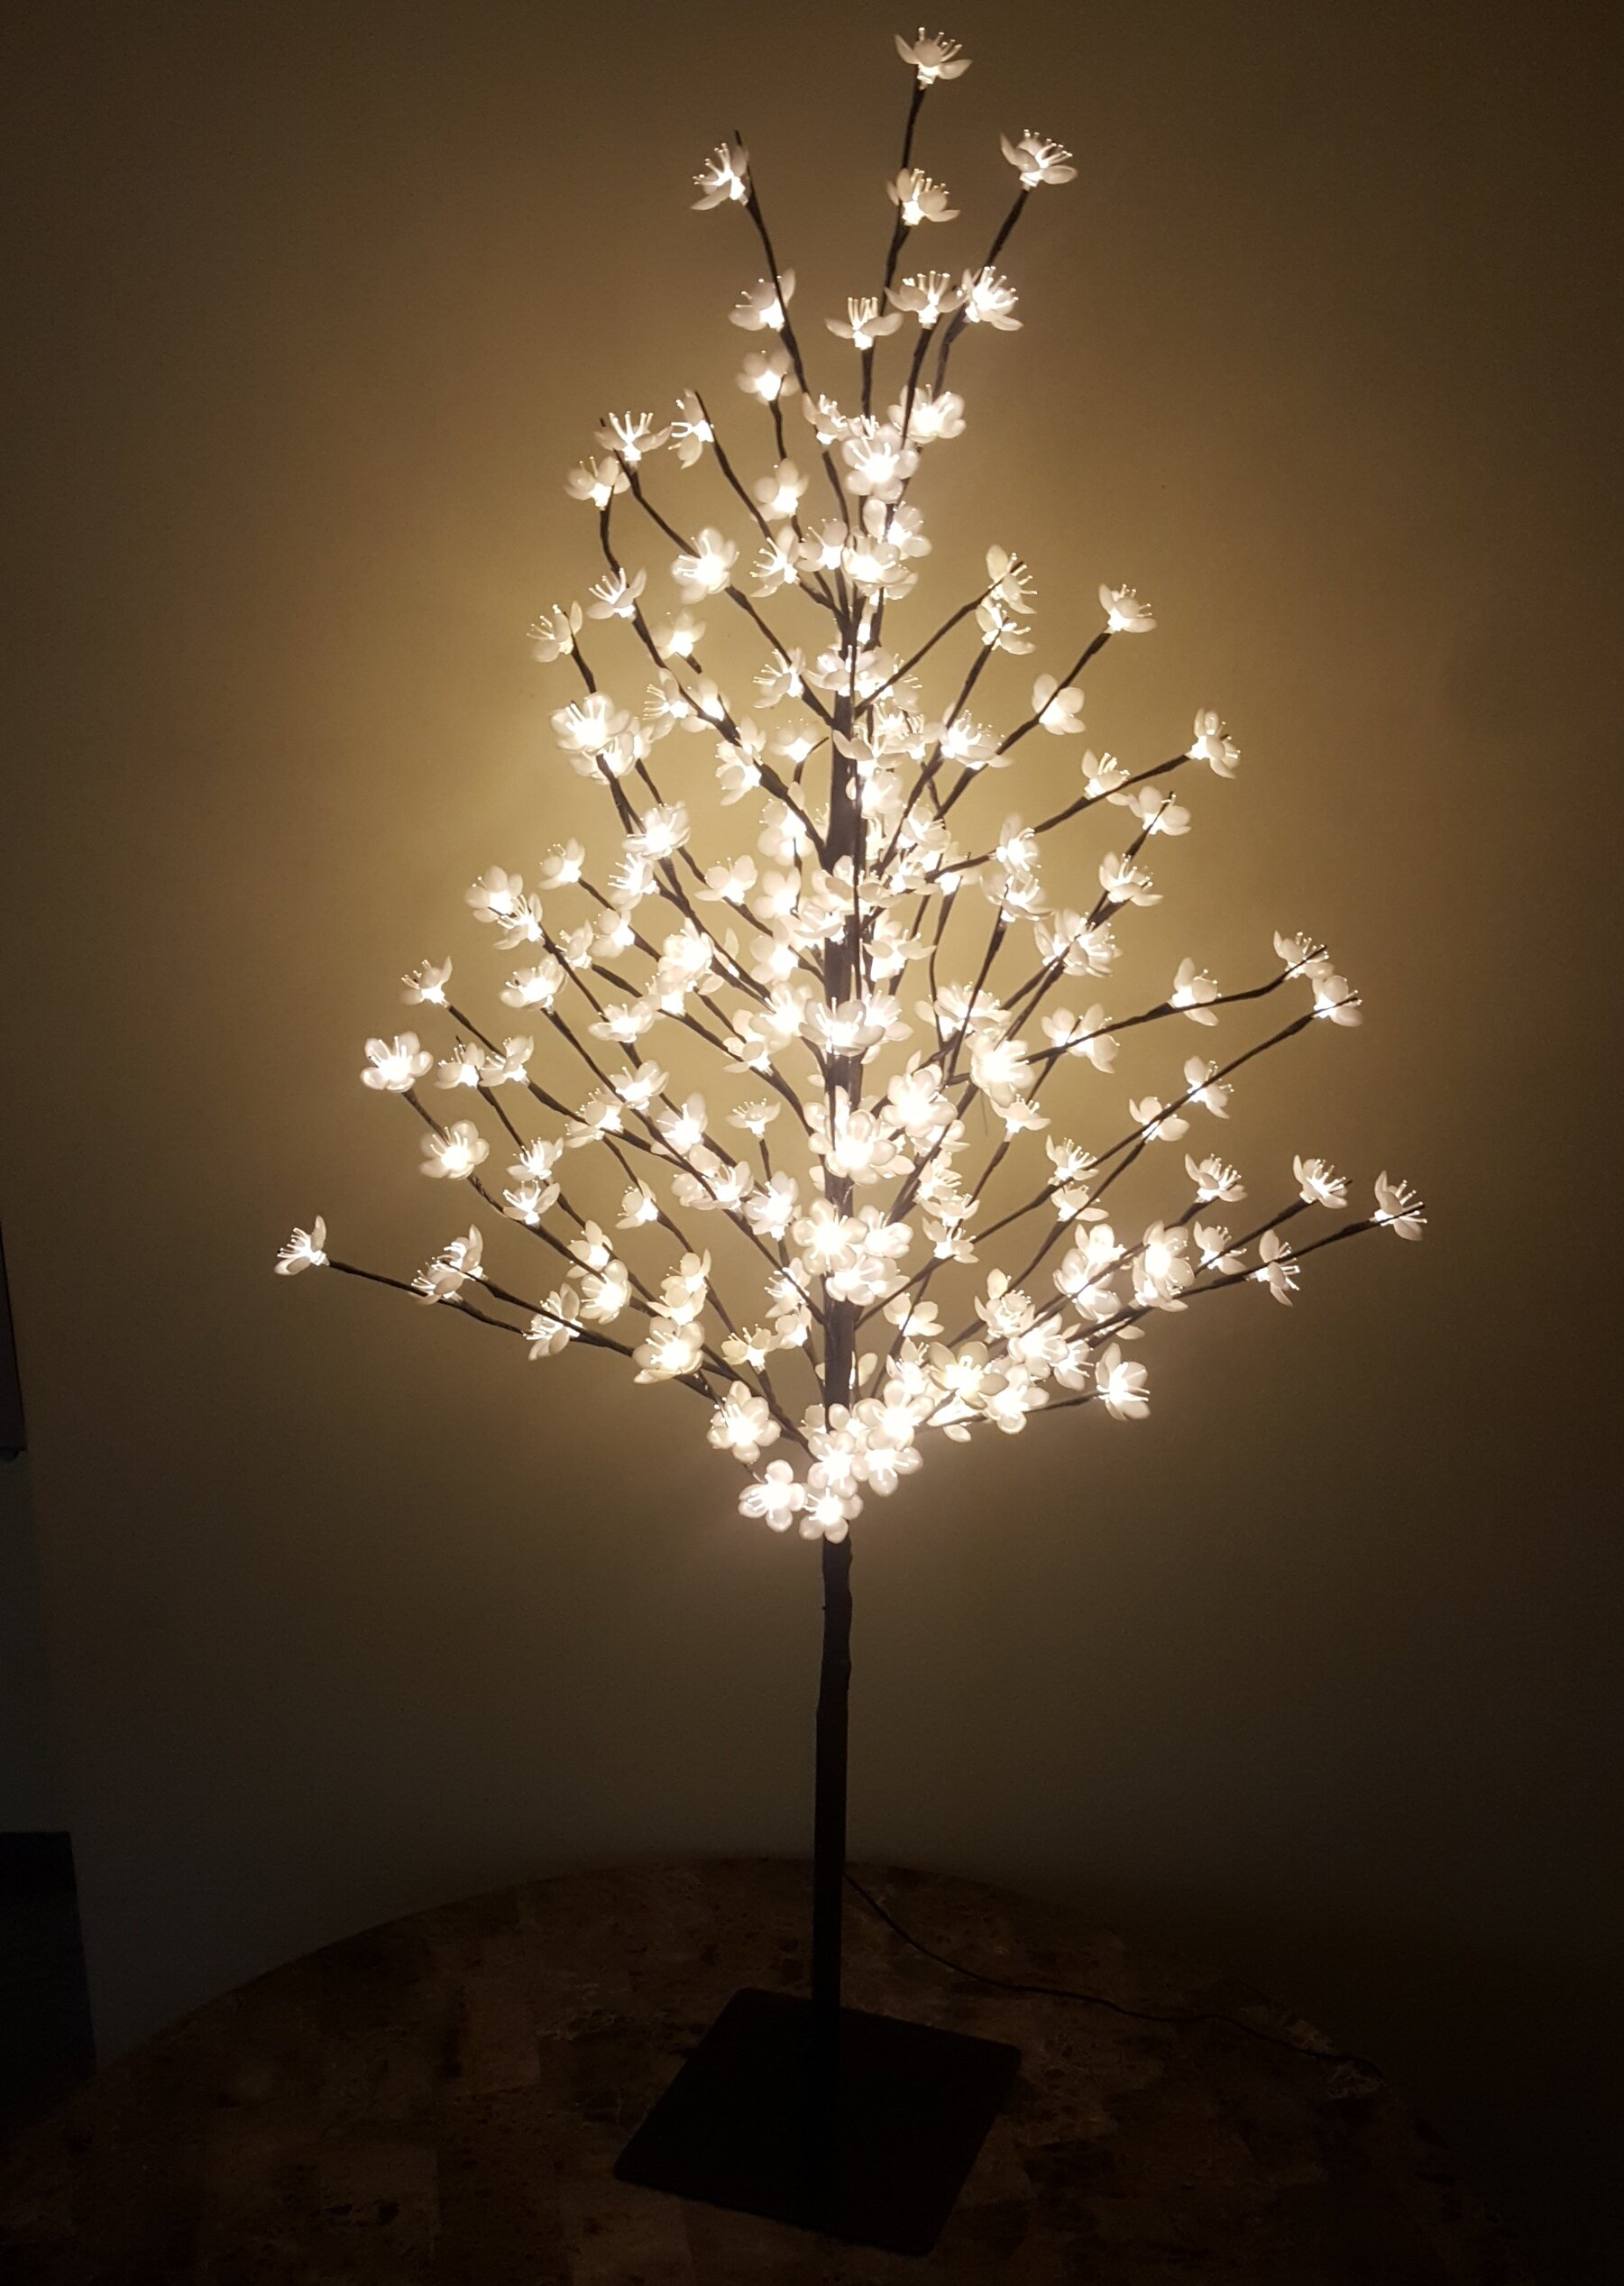 reputable site d7271 e7410 Cherry Blossom Tree 200 Light LED Lighted Tree